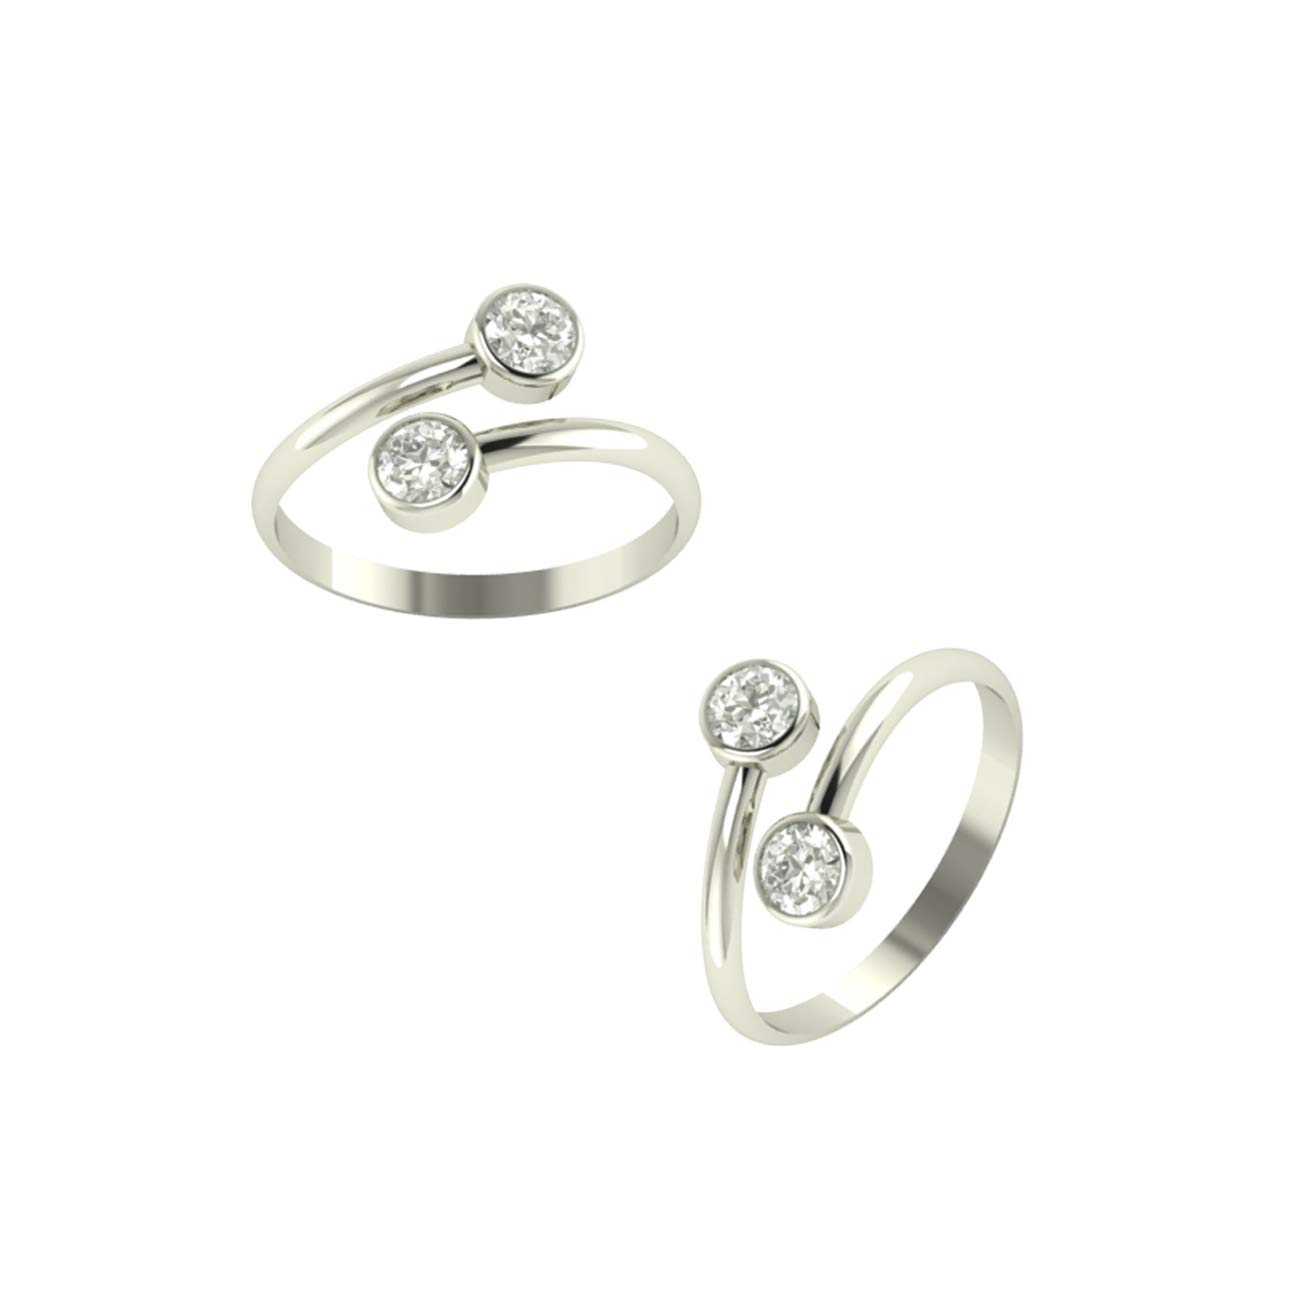 PEEN ZONE WE DELIVER THE ACTUAL JEWELRY Sterling Silver Cubic Zirconia Toe Ring